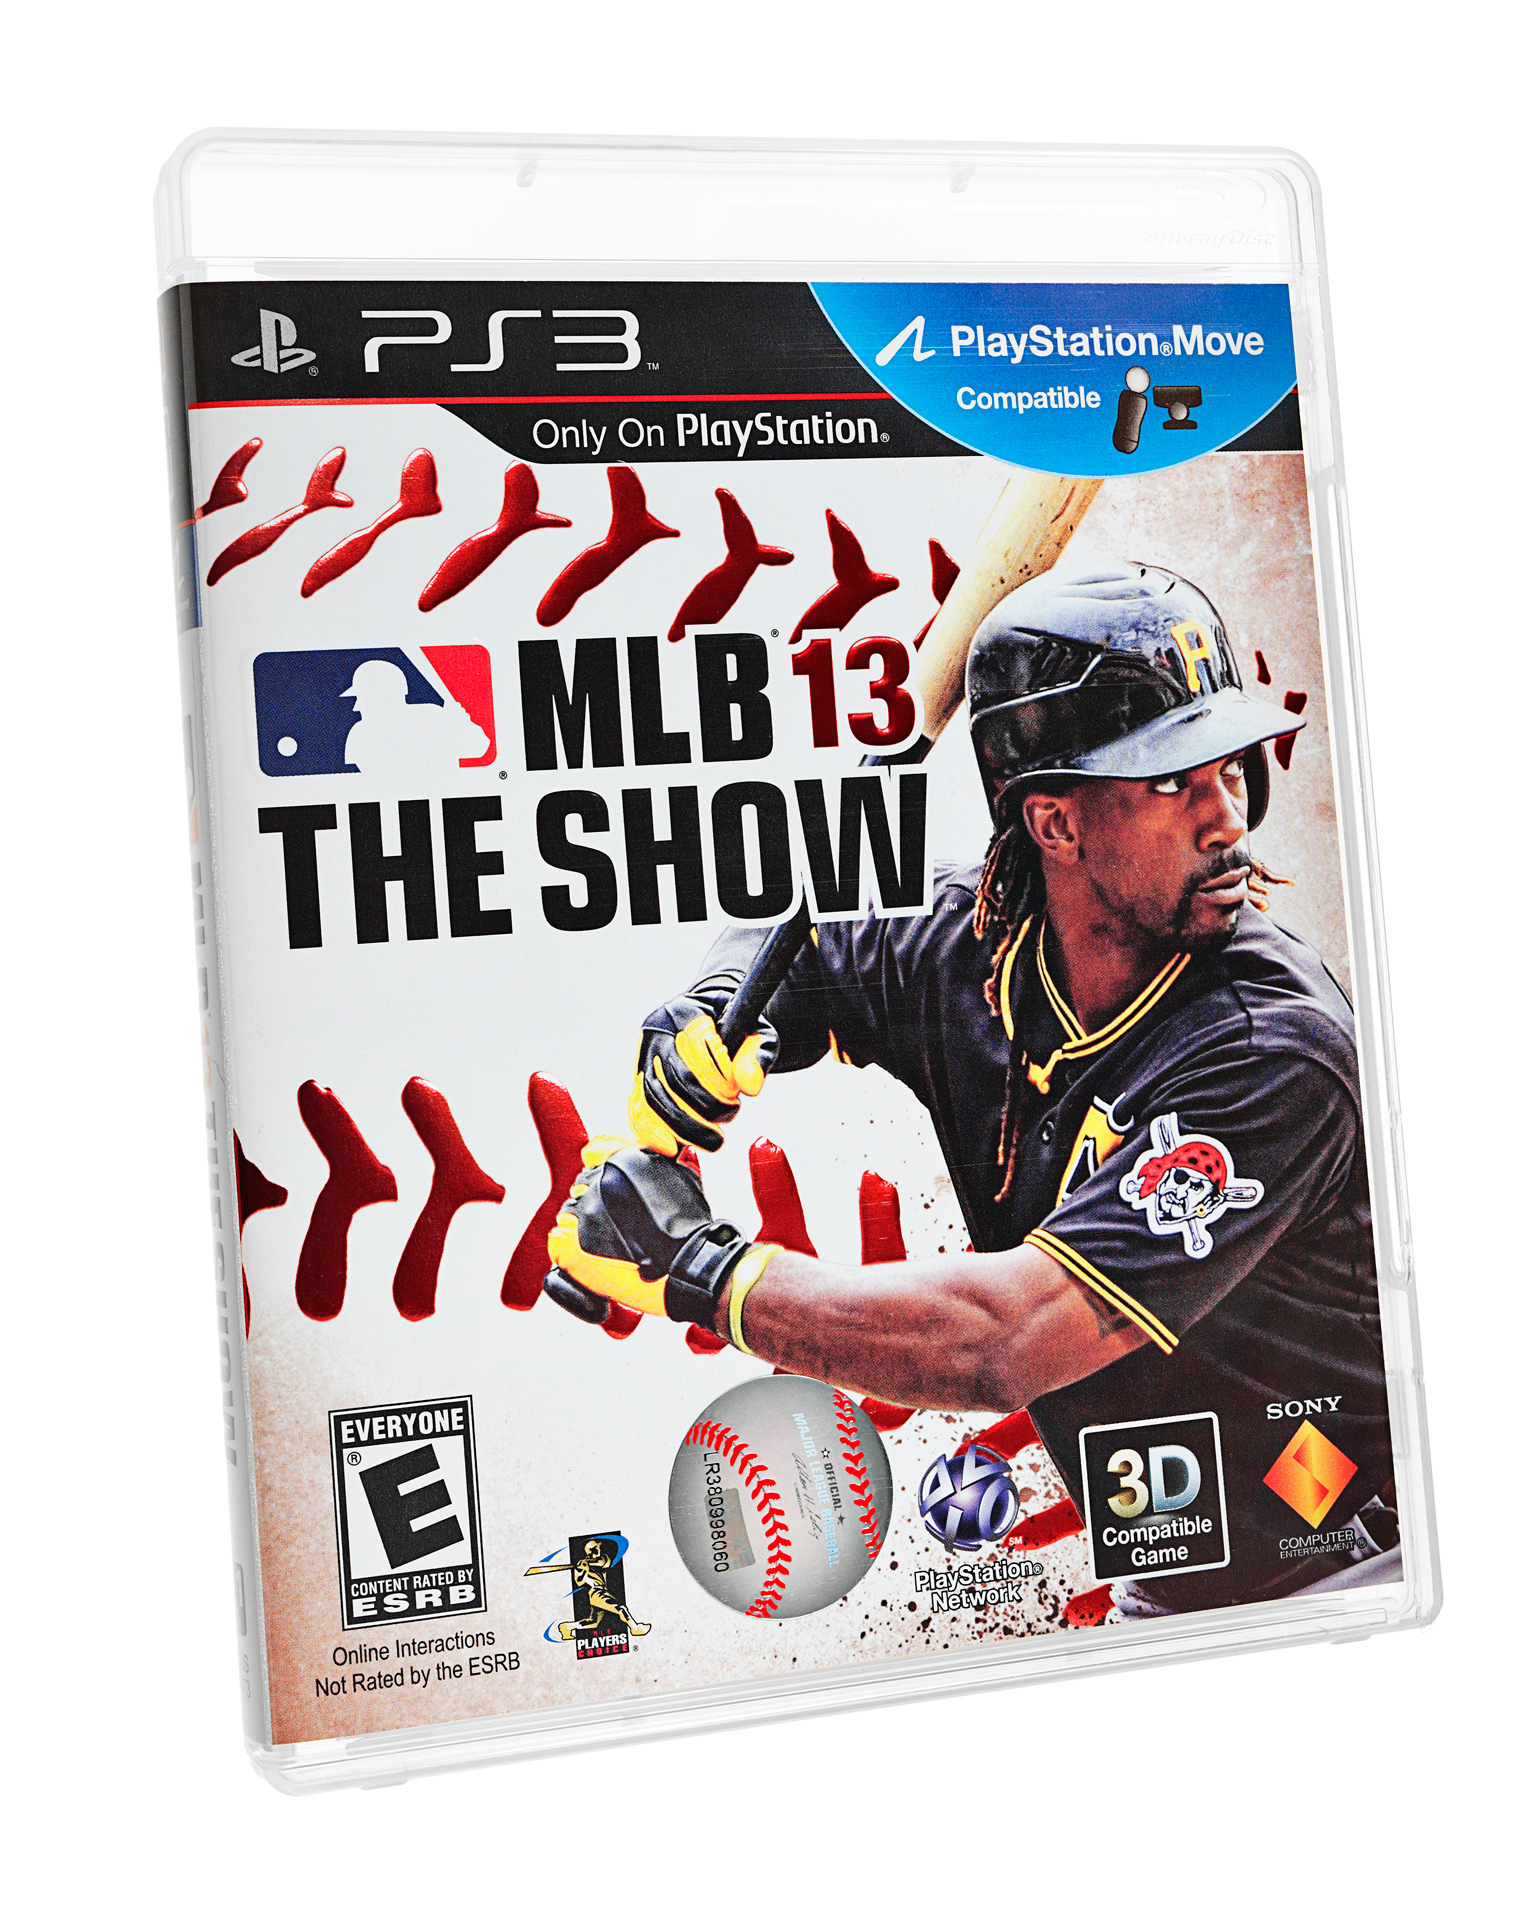 mlb 13 the show for ps3 father 39 s day gift guide espn. Black Bedroom Furniture Sets. Home Design Ideas